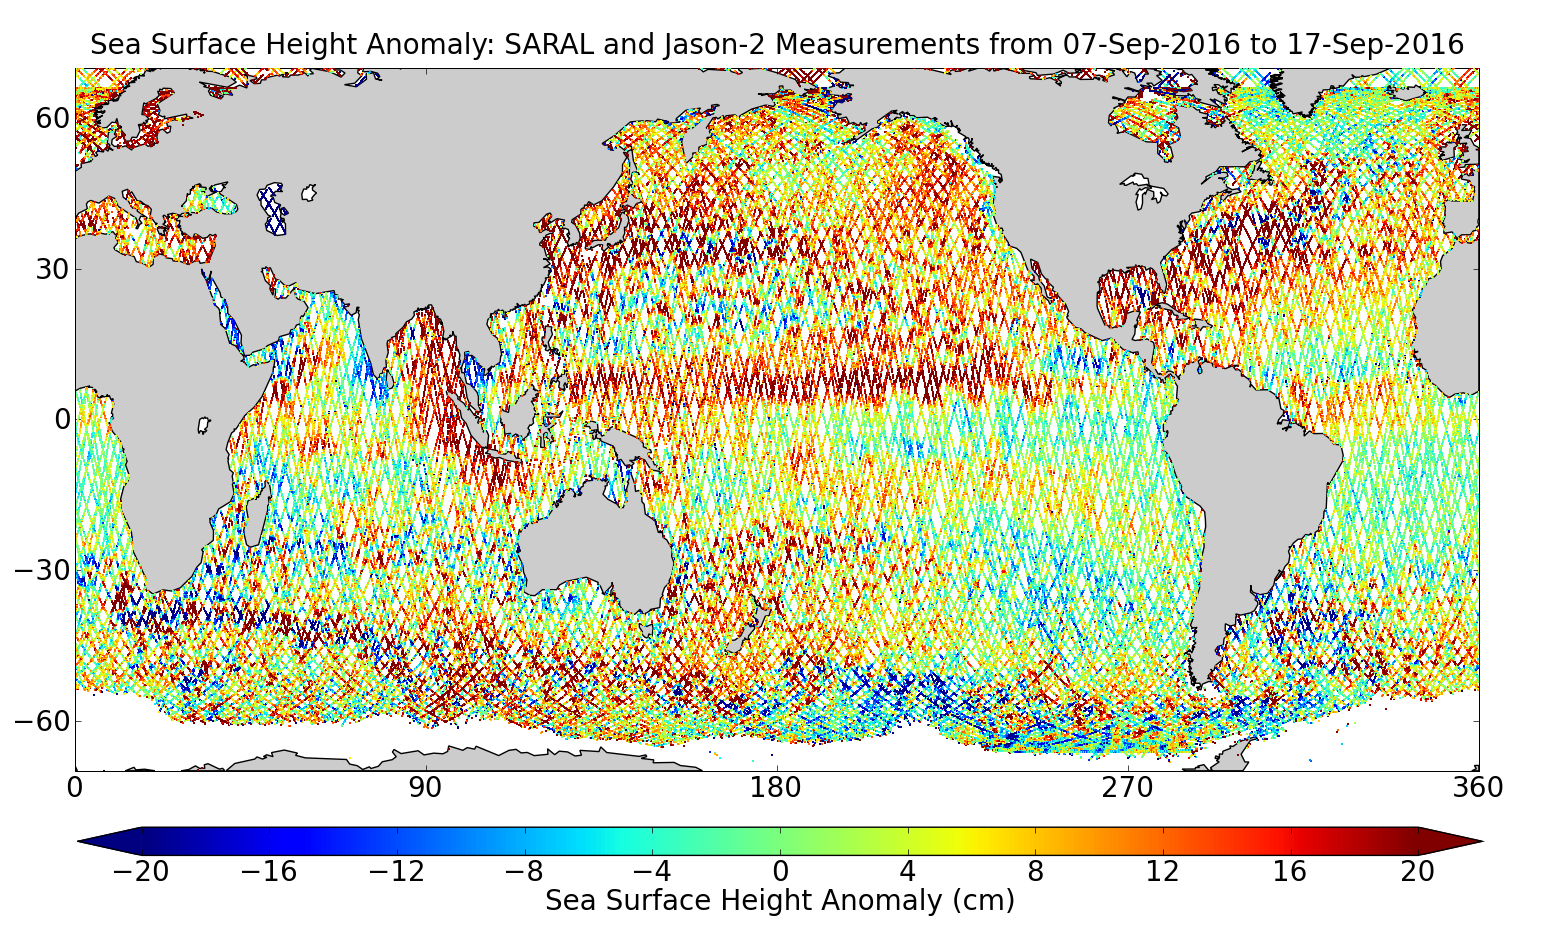 Sea Surface Height Anomaly: SARAL and Jason-2 Measurements from 07-Sep-2016 to 17-Sep-2016